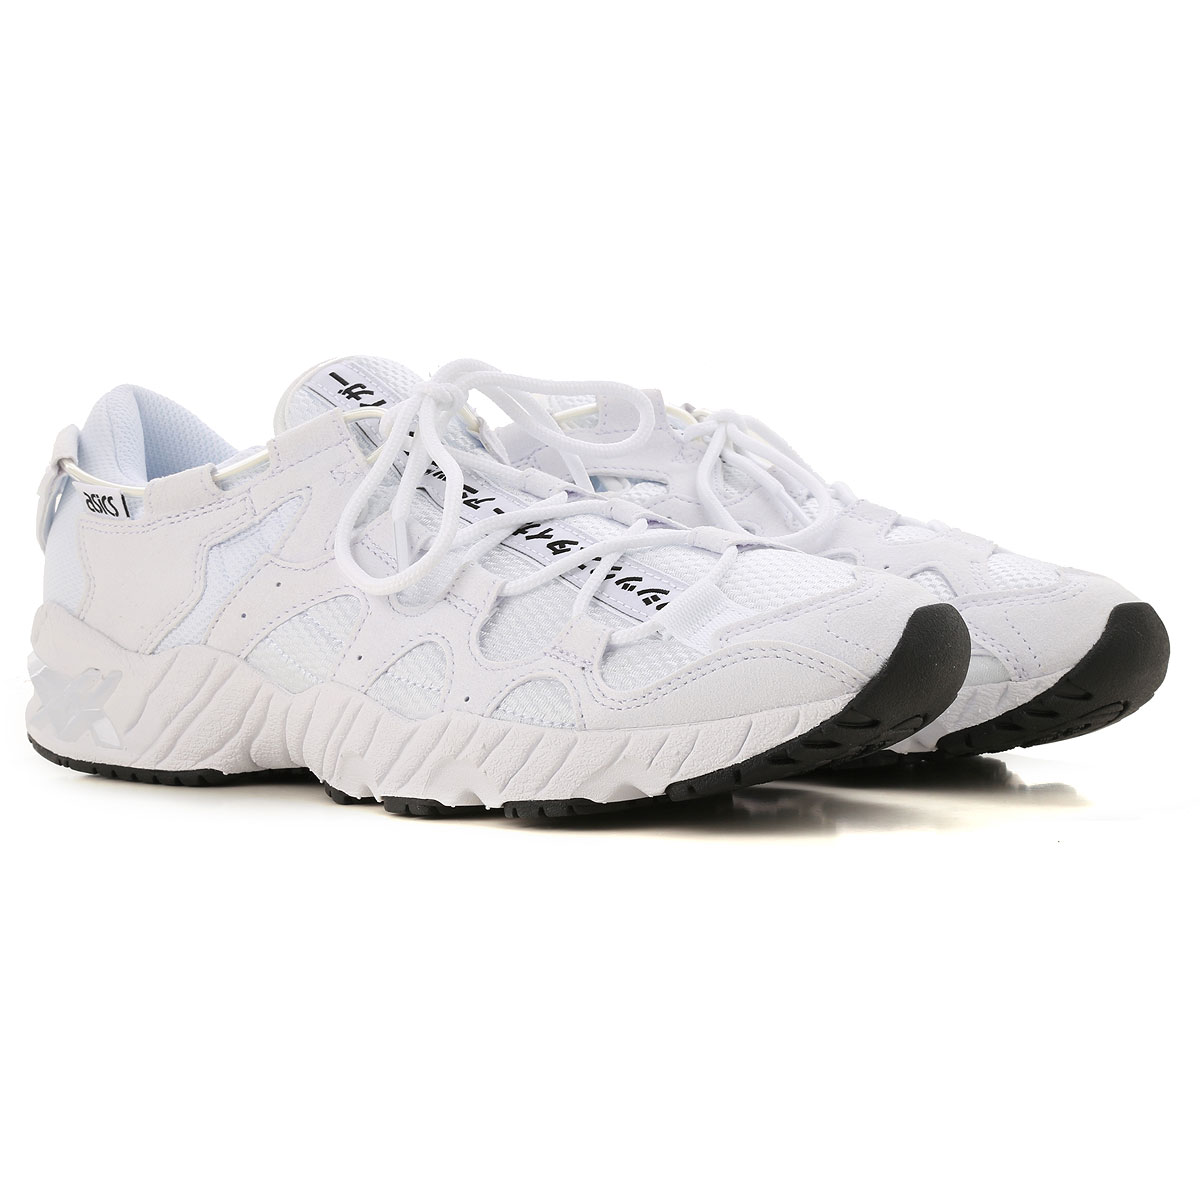 pretty nice 84d68 f1c43 Mens Shoes Asics , Style code: 1193a098-100-